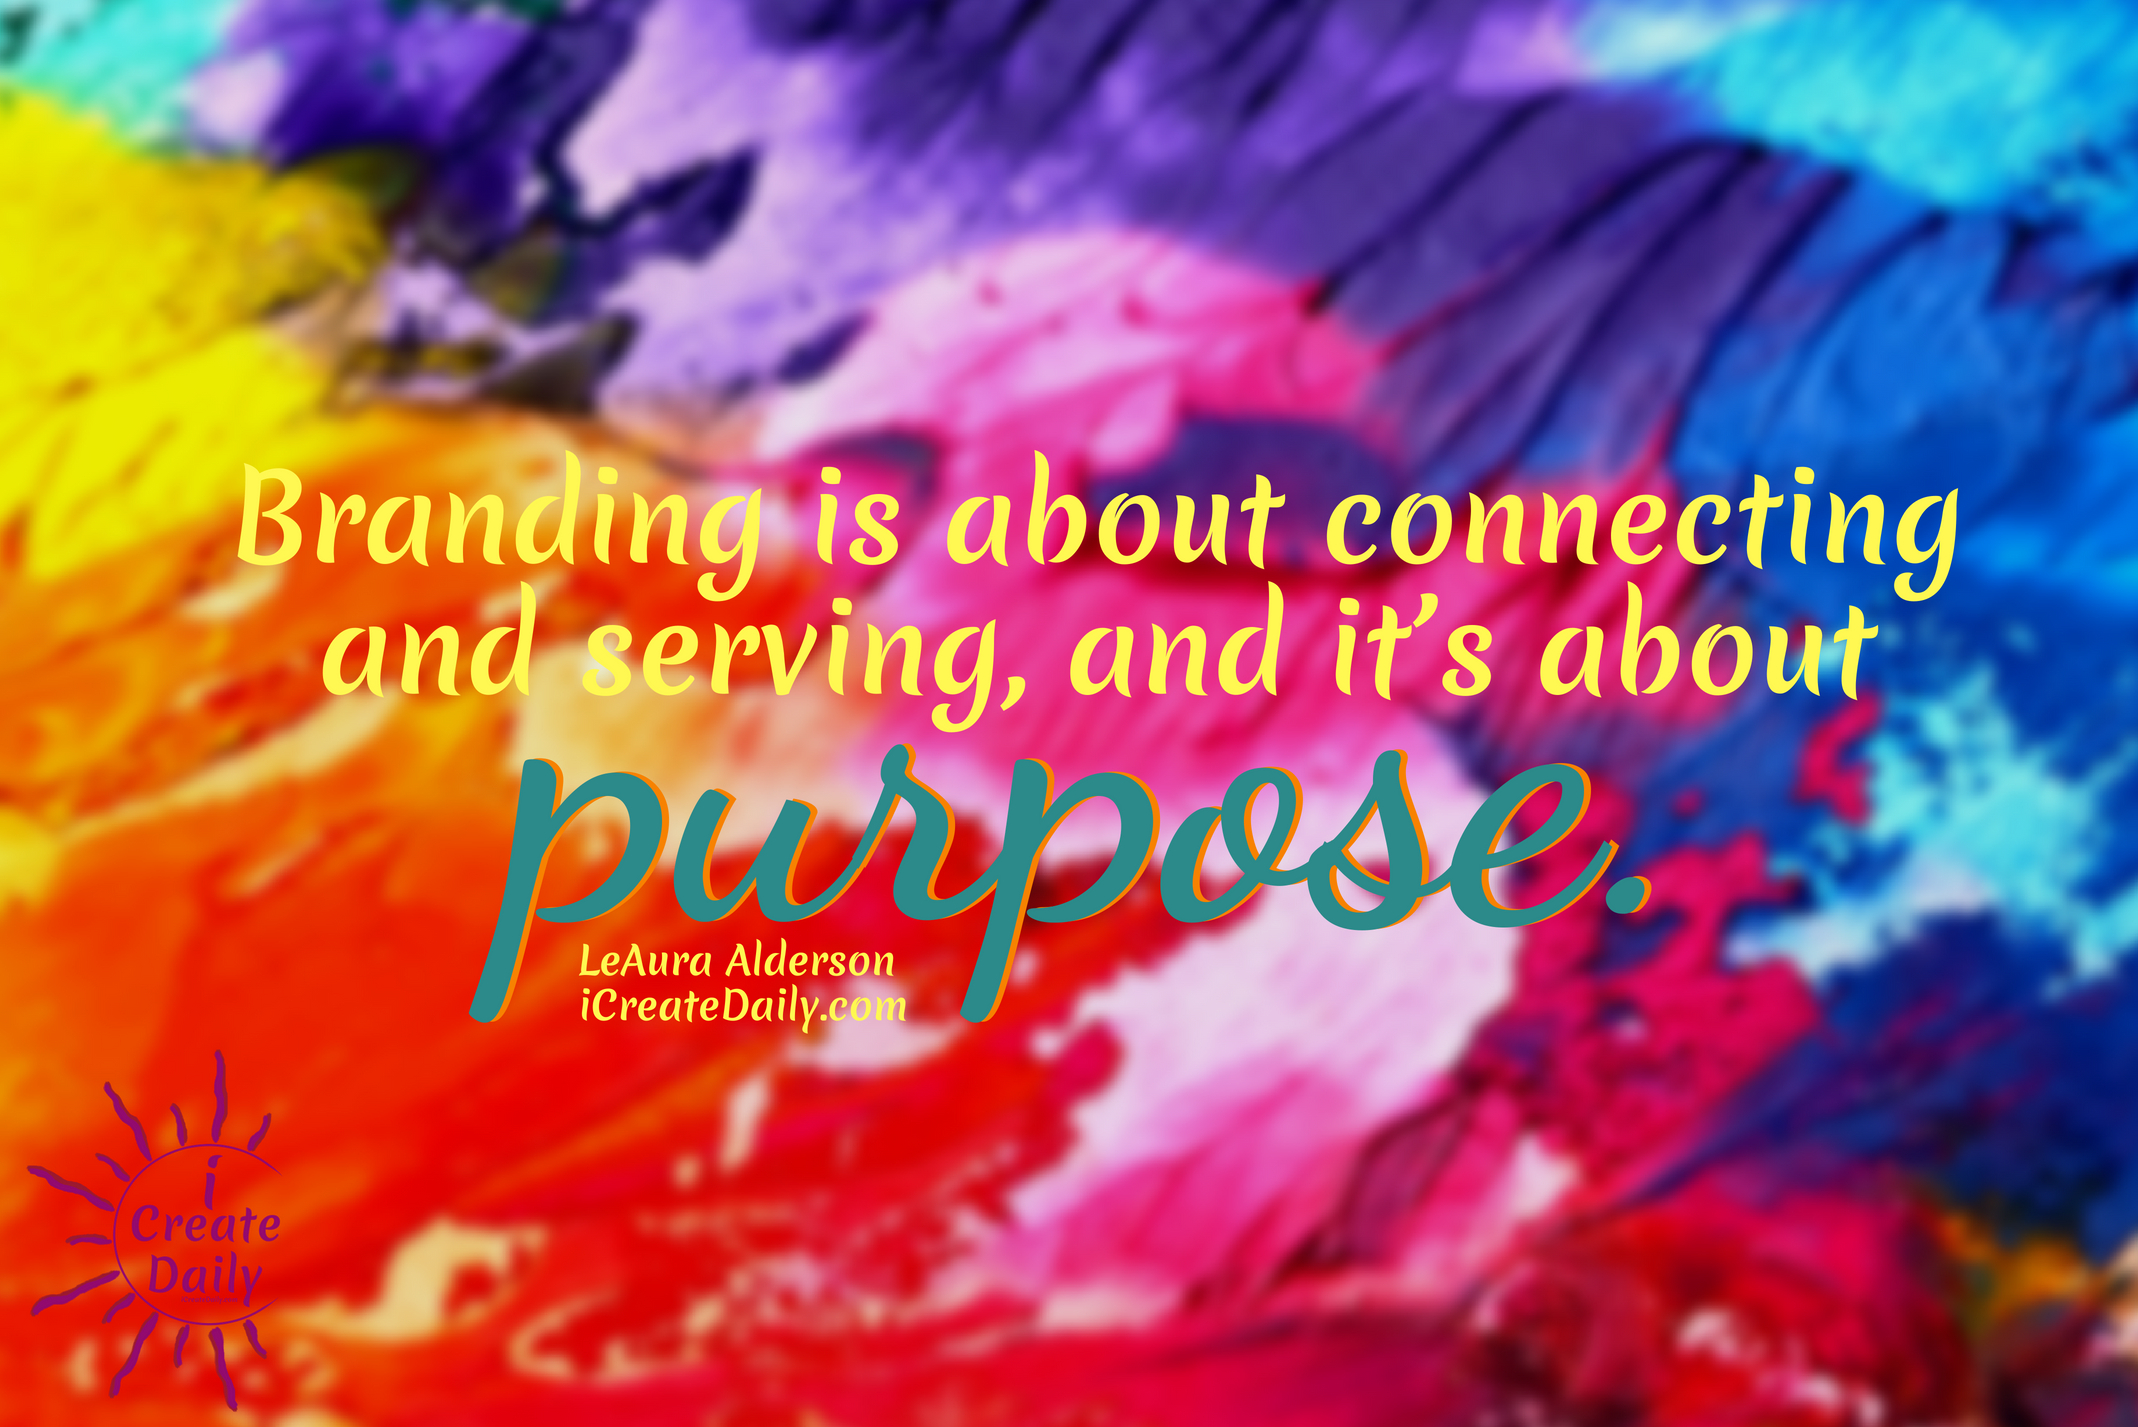 Branding is about connecting and serving, and it's about purpose. ~LeAura Alderson, iCreateDaily.com® #BrandBuilding #Branding #SocialNetwork #BrandingPurpose